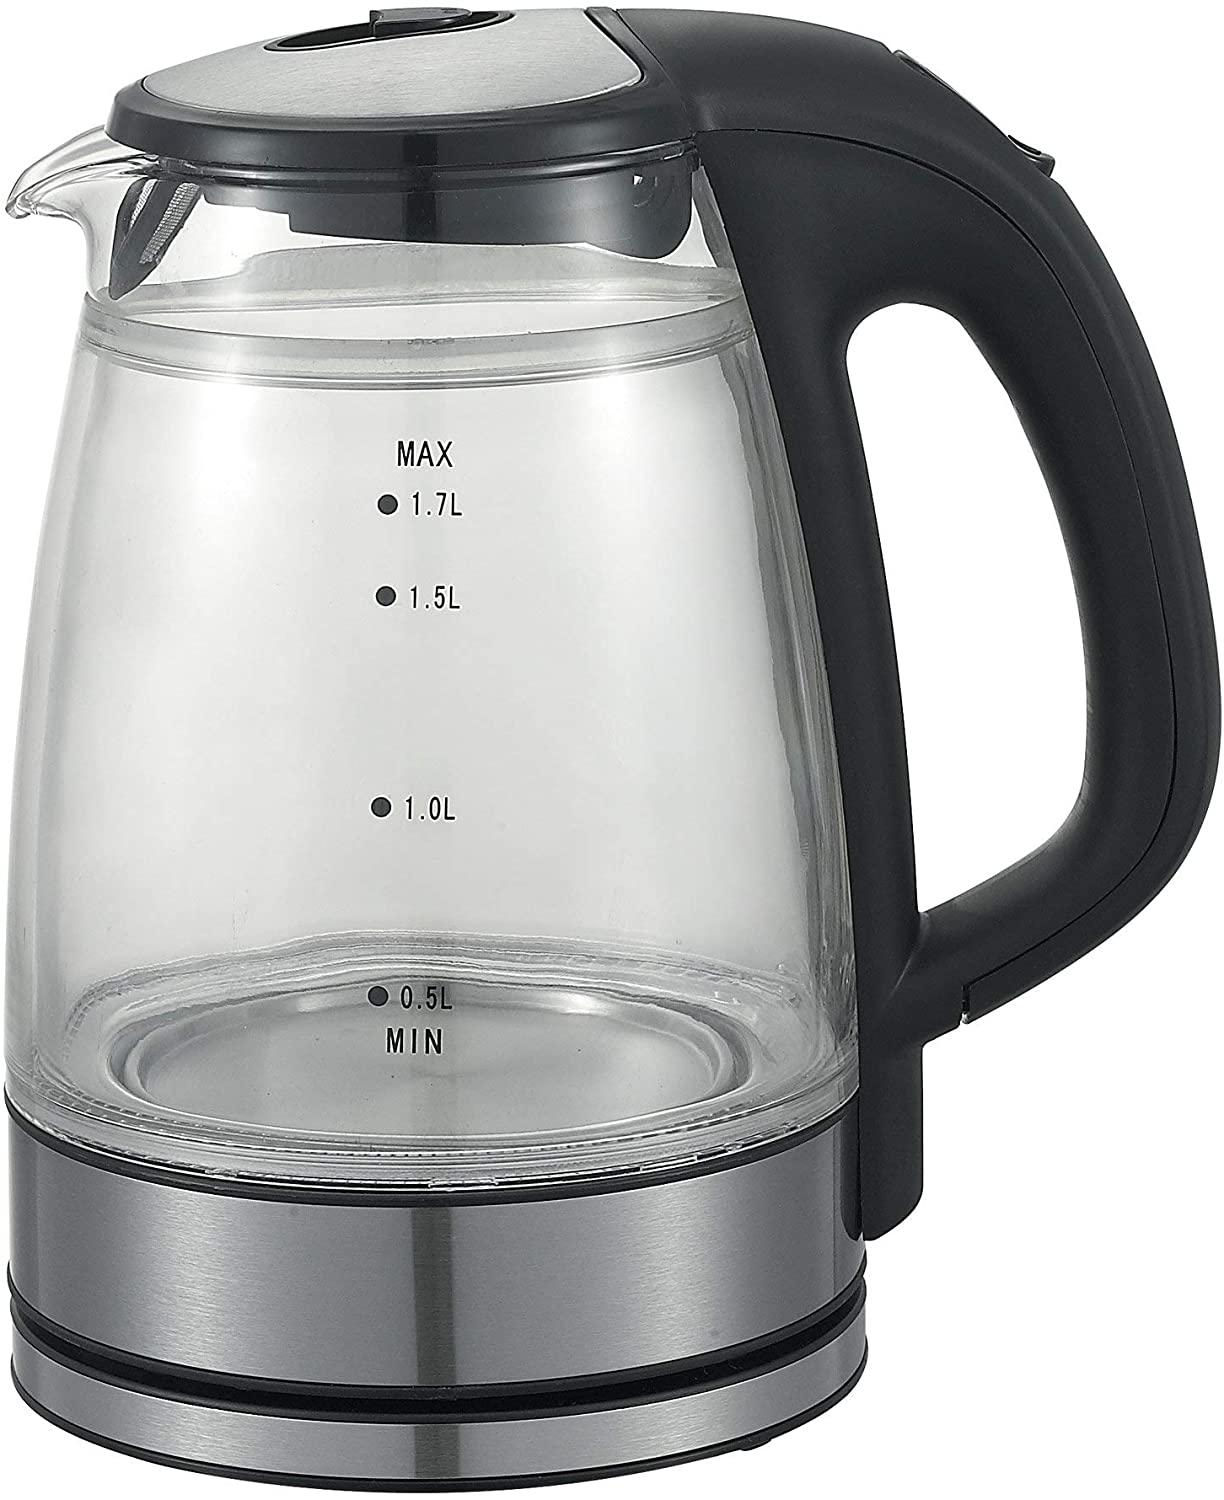 Electric Kettle,Double Wall Glass Kettle (1.7L, GK1501)